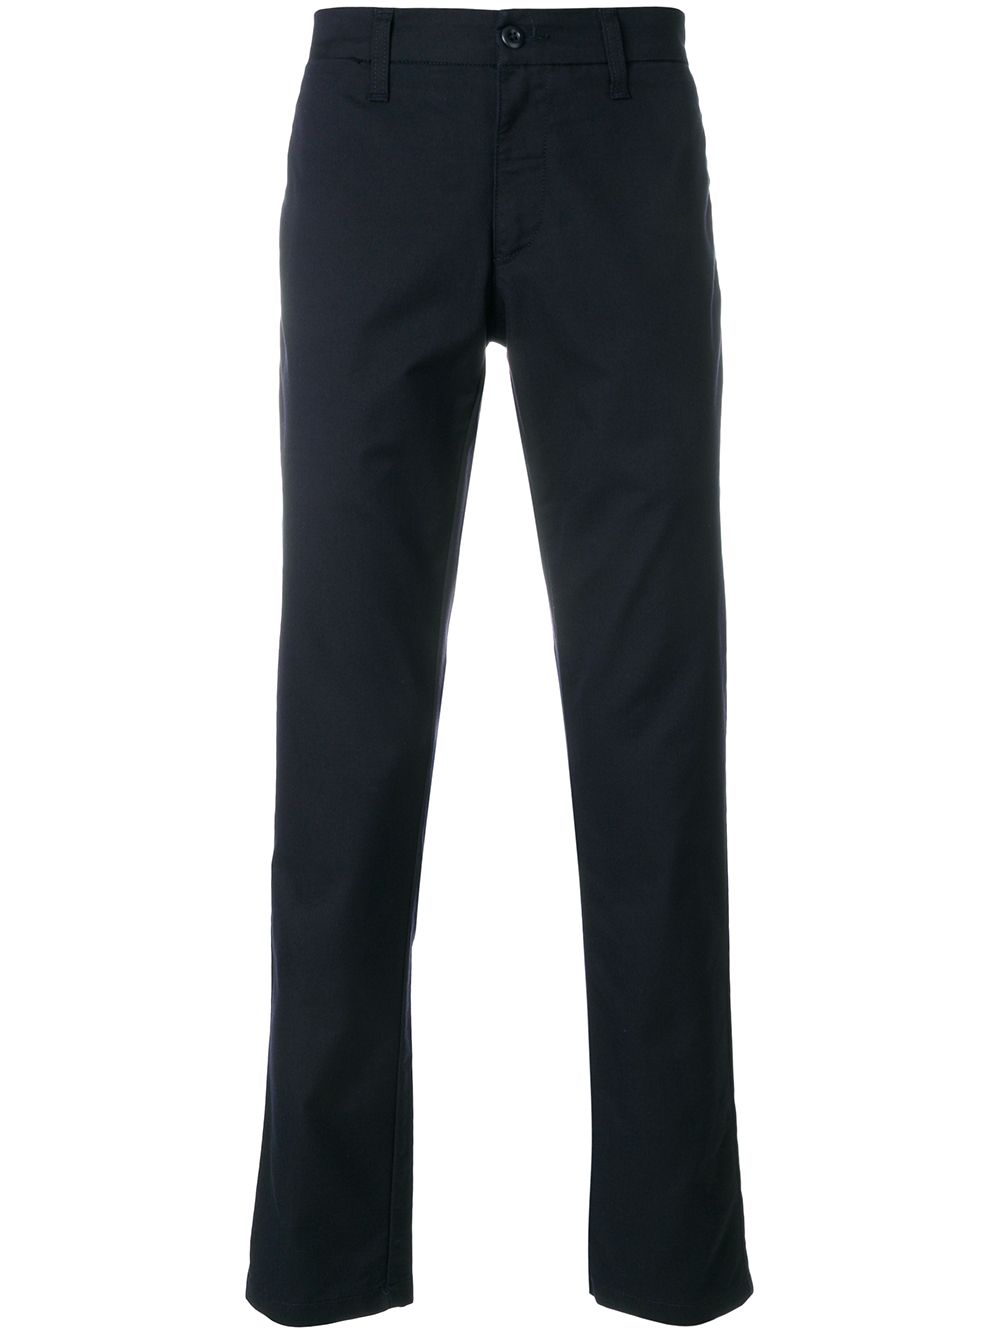 sid pants man blue in cotton CARHARTT WIP | Trousers | I0033671C.02